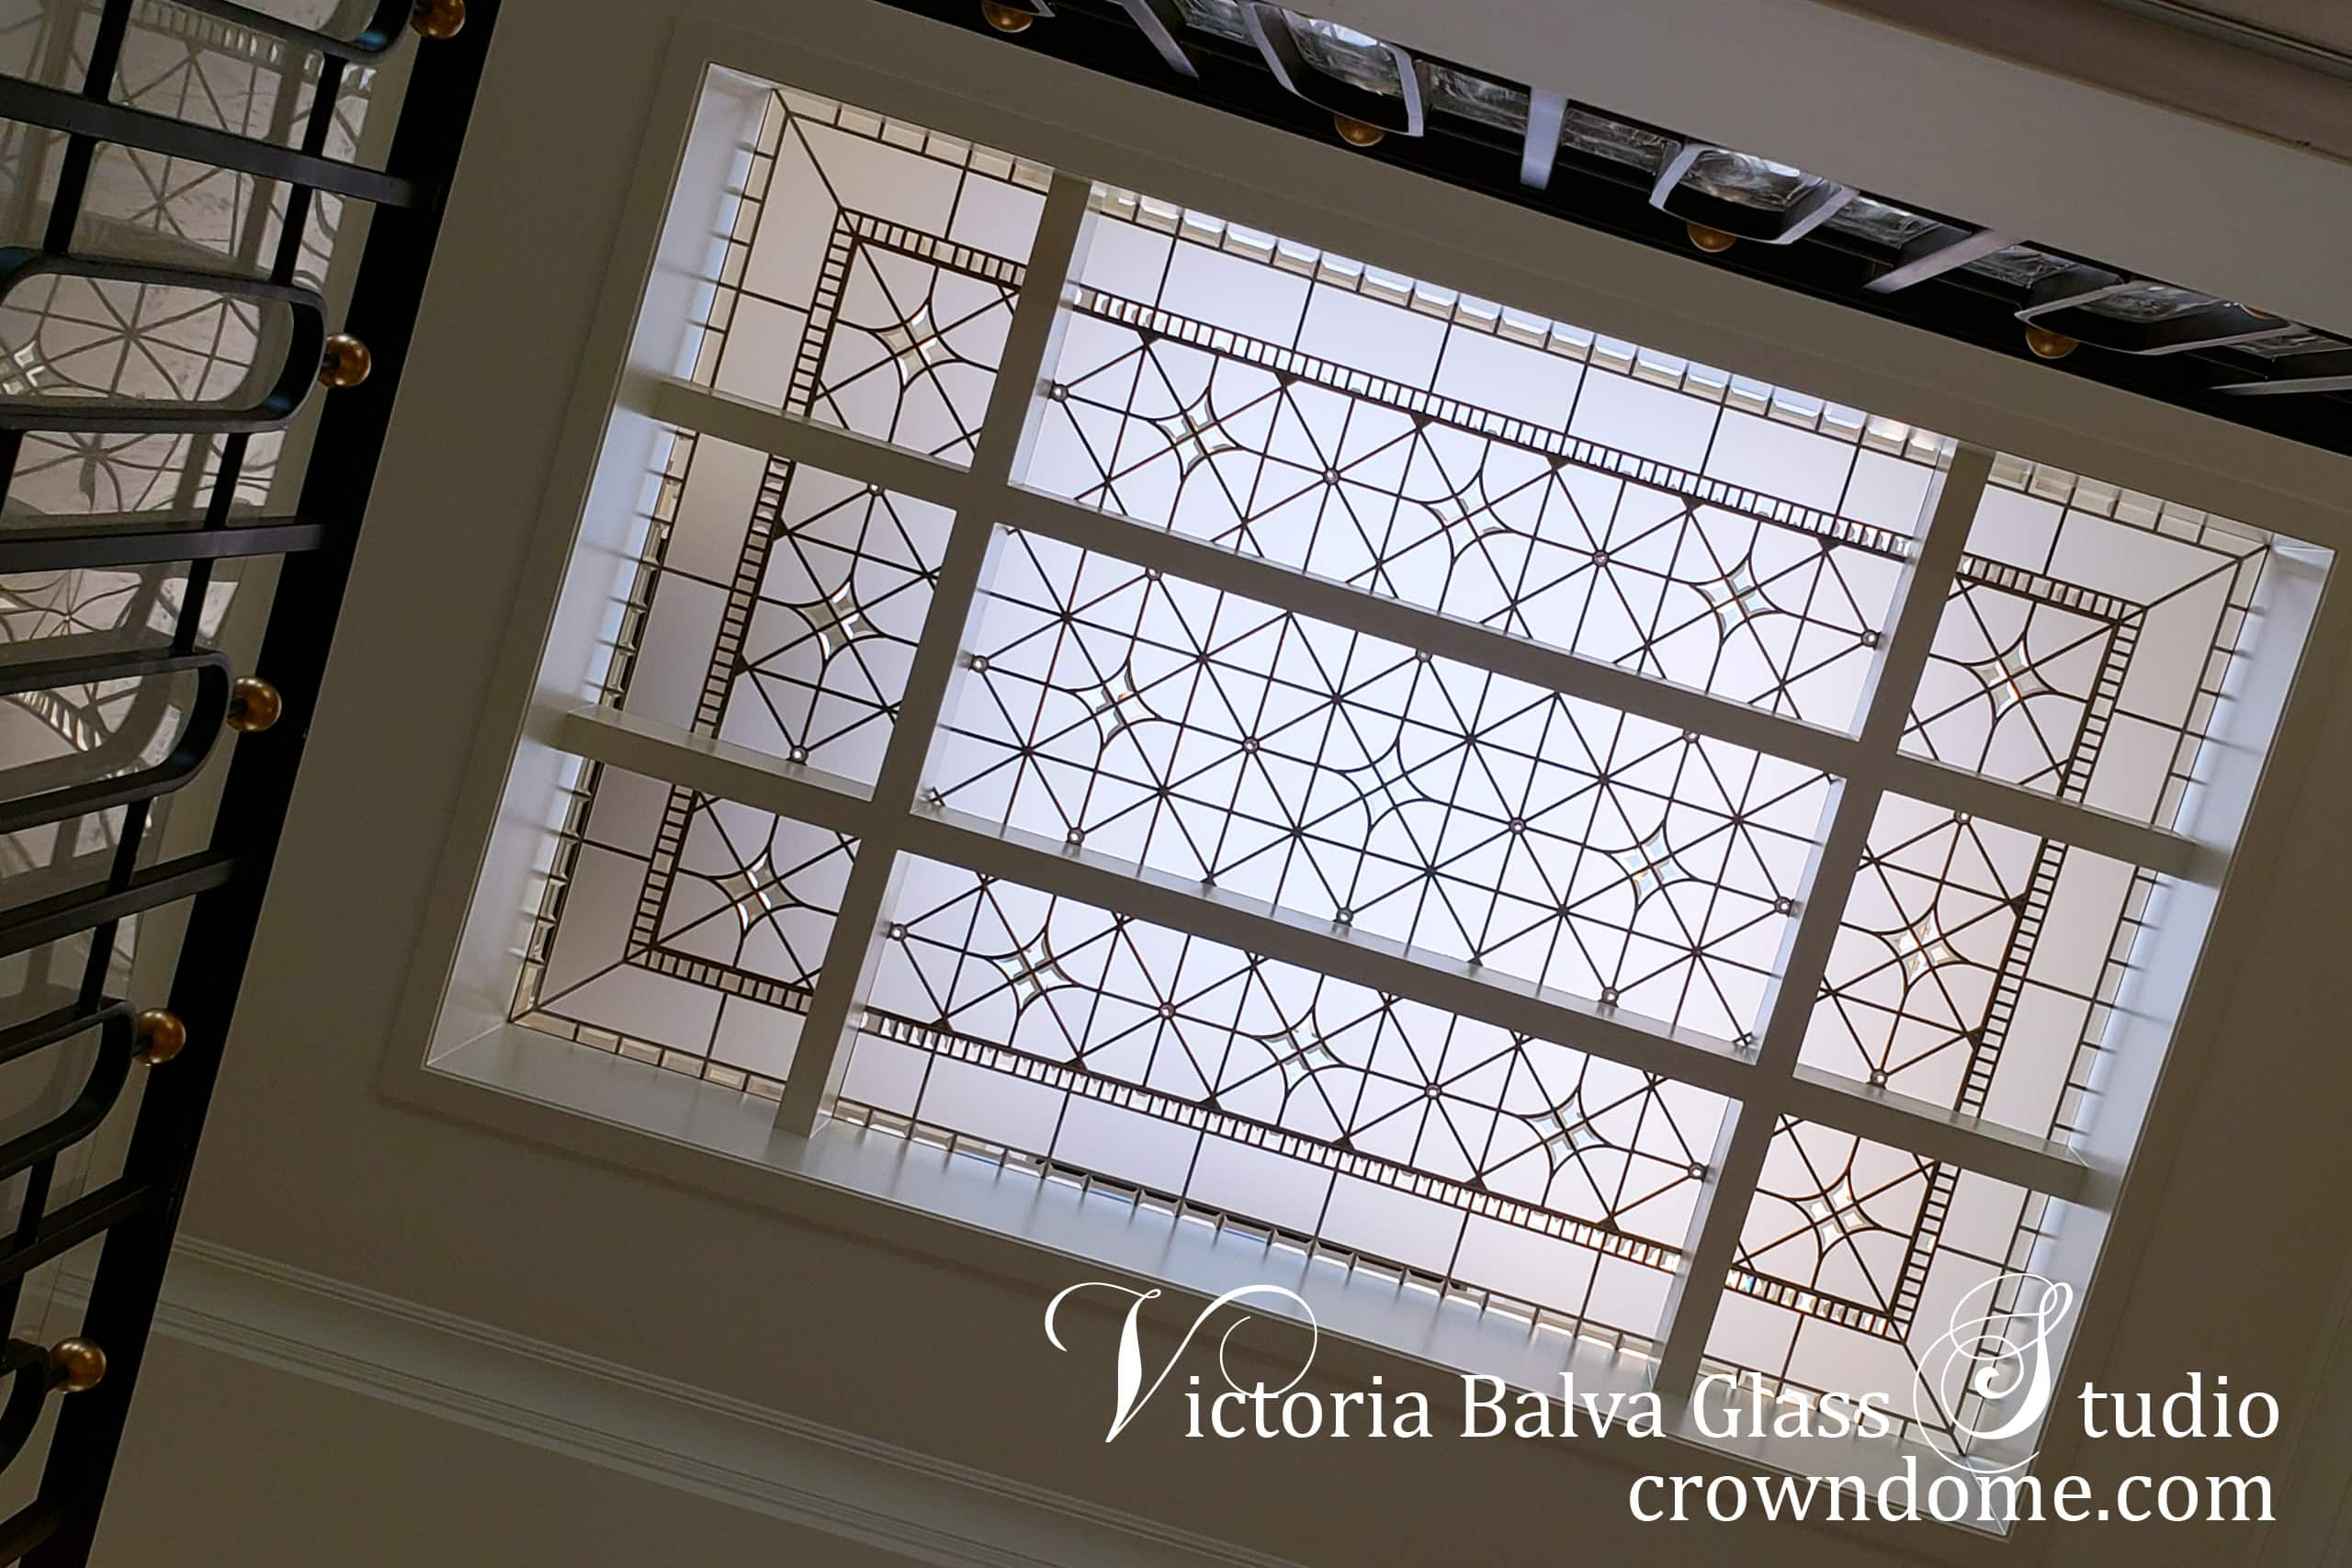 Contemporary clear leaded glass skylight custom designed fabricated with acid etched glass, crystal jewel accents and handcrafted bevelled glass for a luxury custom built residence in Thornhill, ON